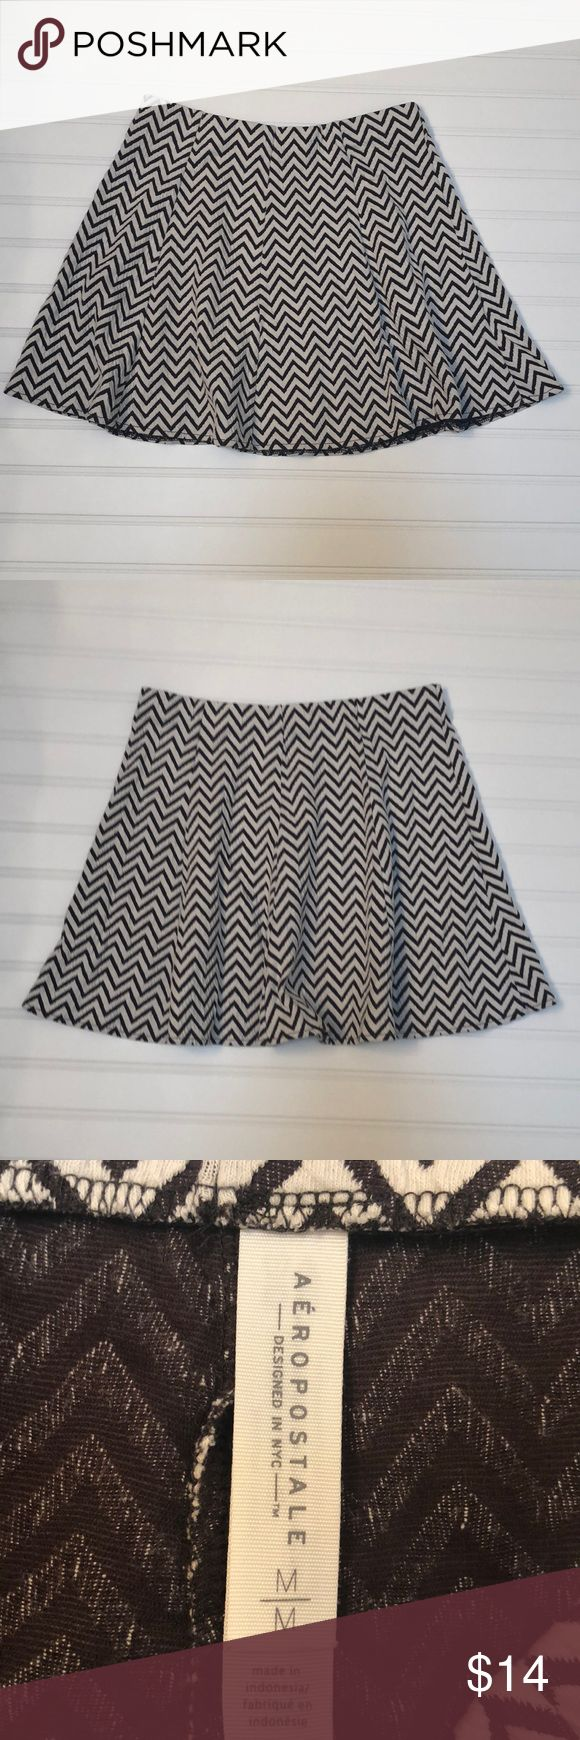 Aeropostale Zig Zag Brown Mini Skirt Size Medium Brown and white zig zag knit fabric Excellent condition Super comfortable Elastic waistband Skirt is 15 inches long Elasti Waistband laid flat: 14 inches, 28 inches around with lots more room to stretch Flared at bottom a bit with seaming 1016531 Aeropostale Skirts Mini